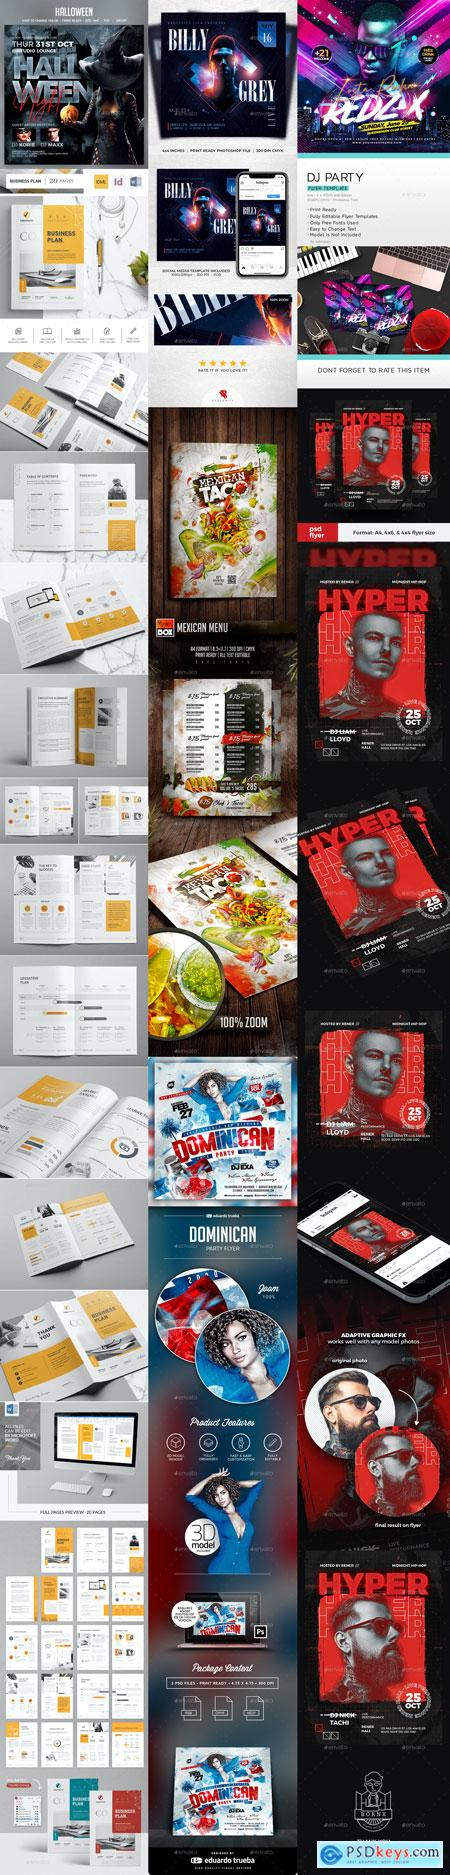 Flyer Templates Vip 17-AUG-2020 PREVIEW